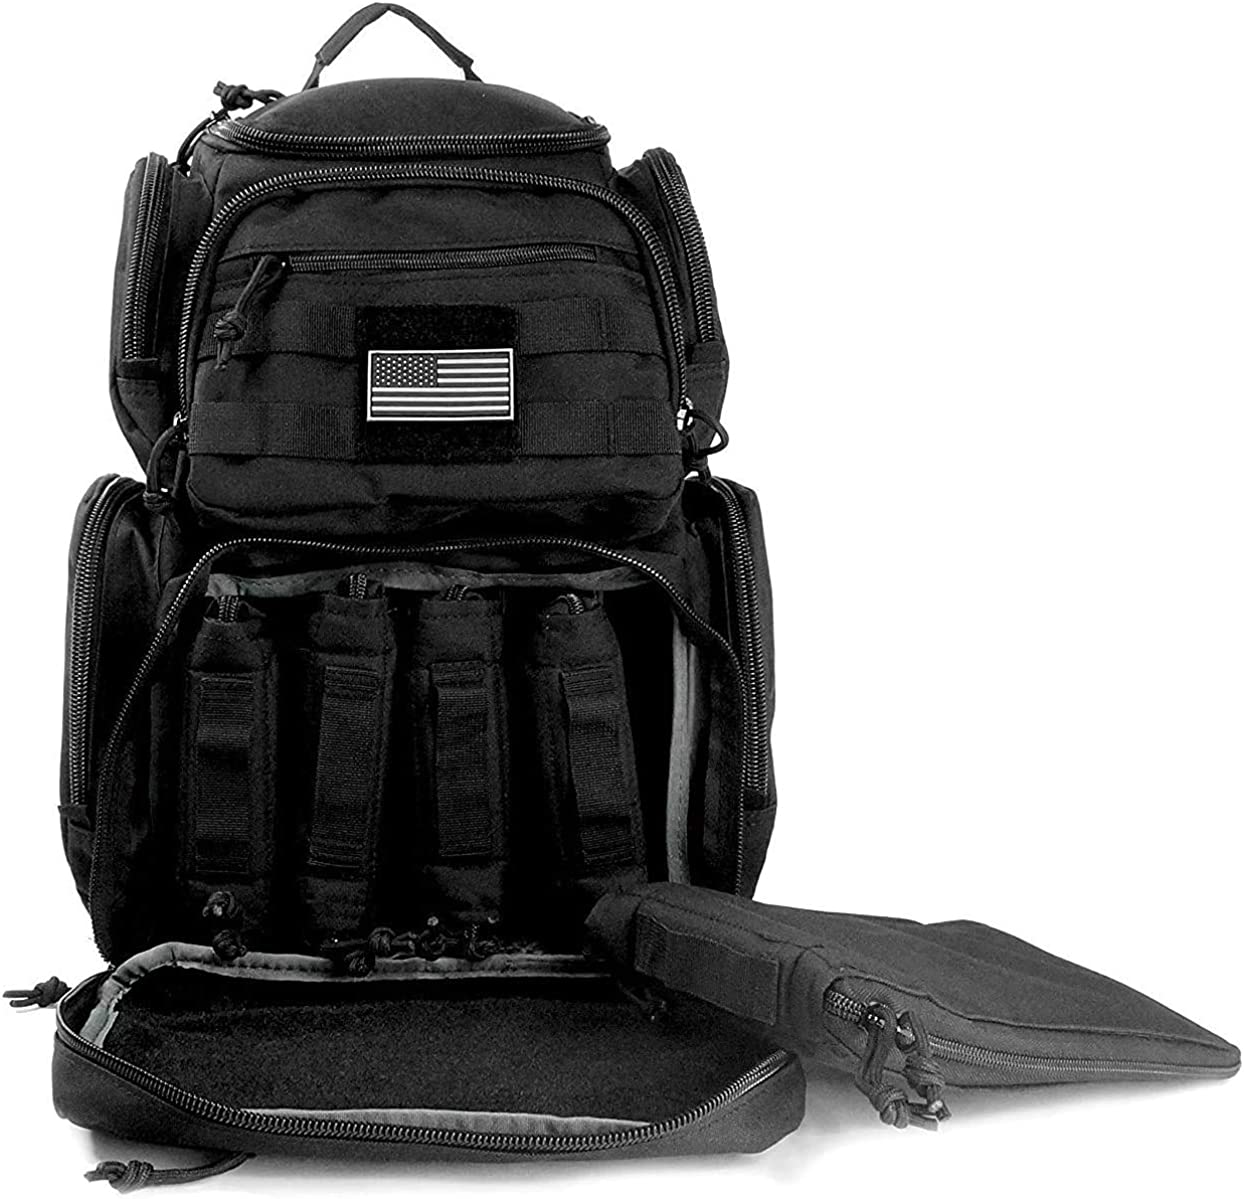 NiceAndGreat Tactical Shooting Range Backpack Carries 5 Handguns Ammo Pouches and Magazine Pockets for Pistols Thick Heavy Duty Gun Carrier Range Bag